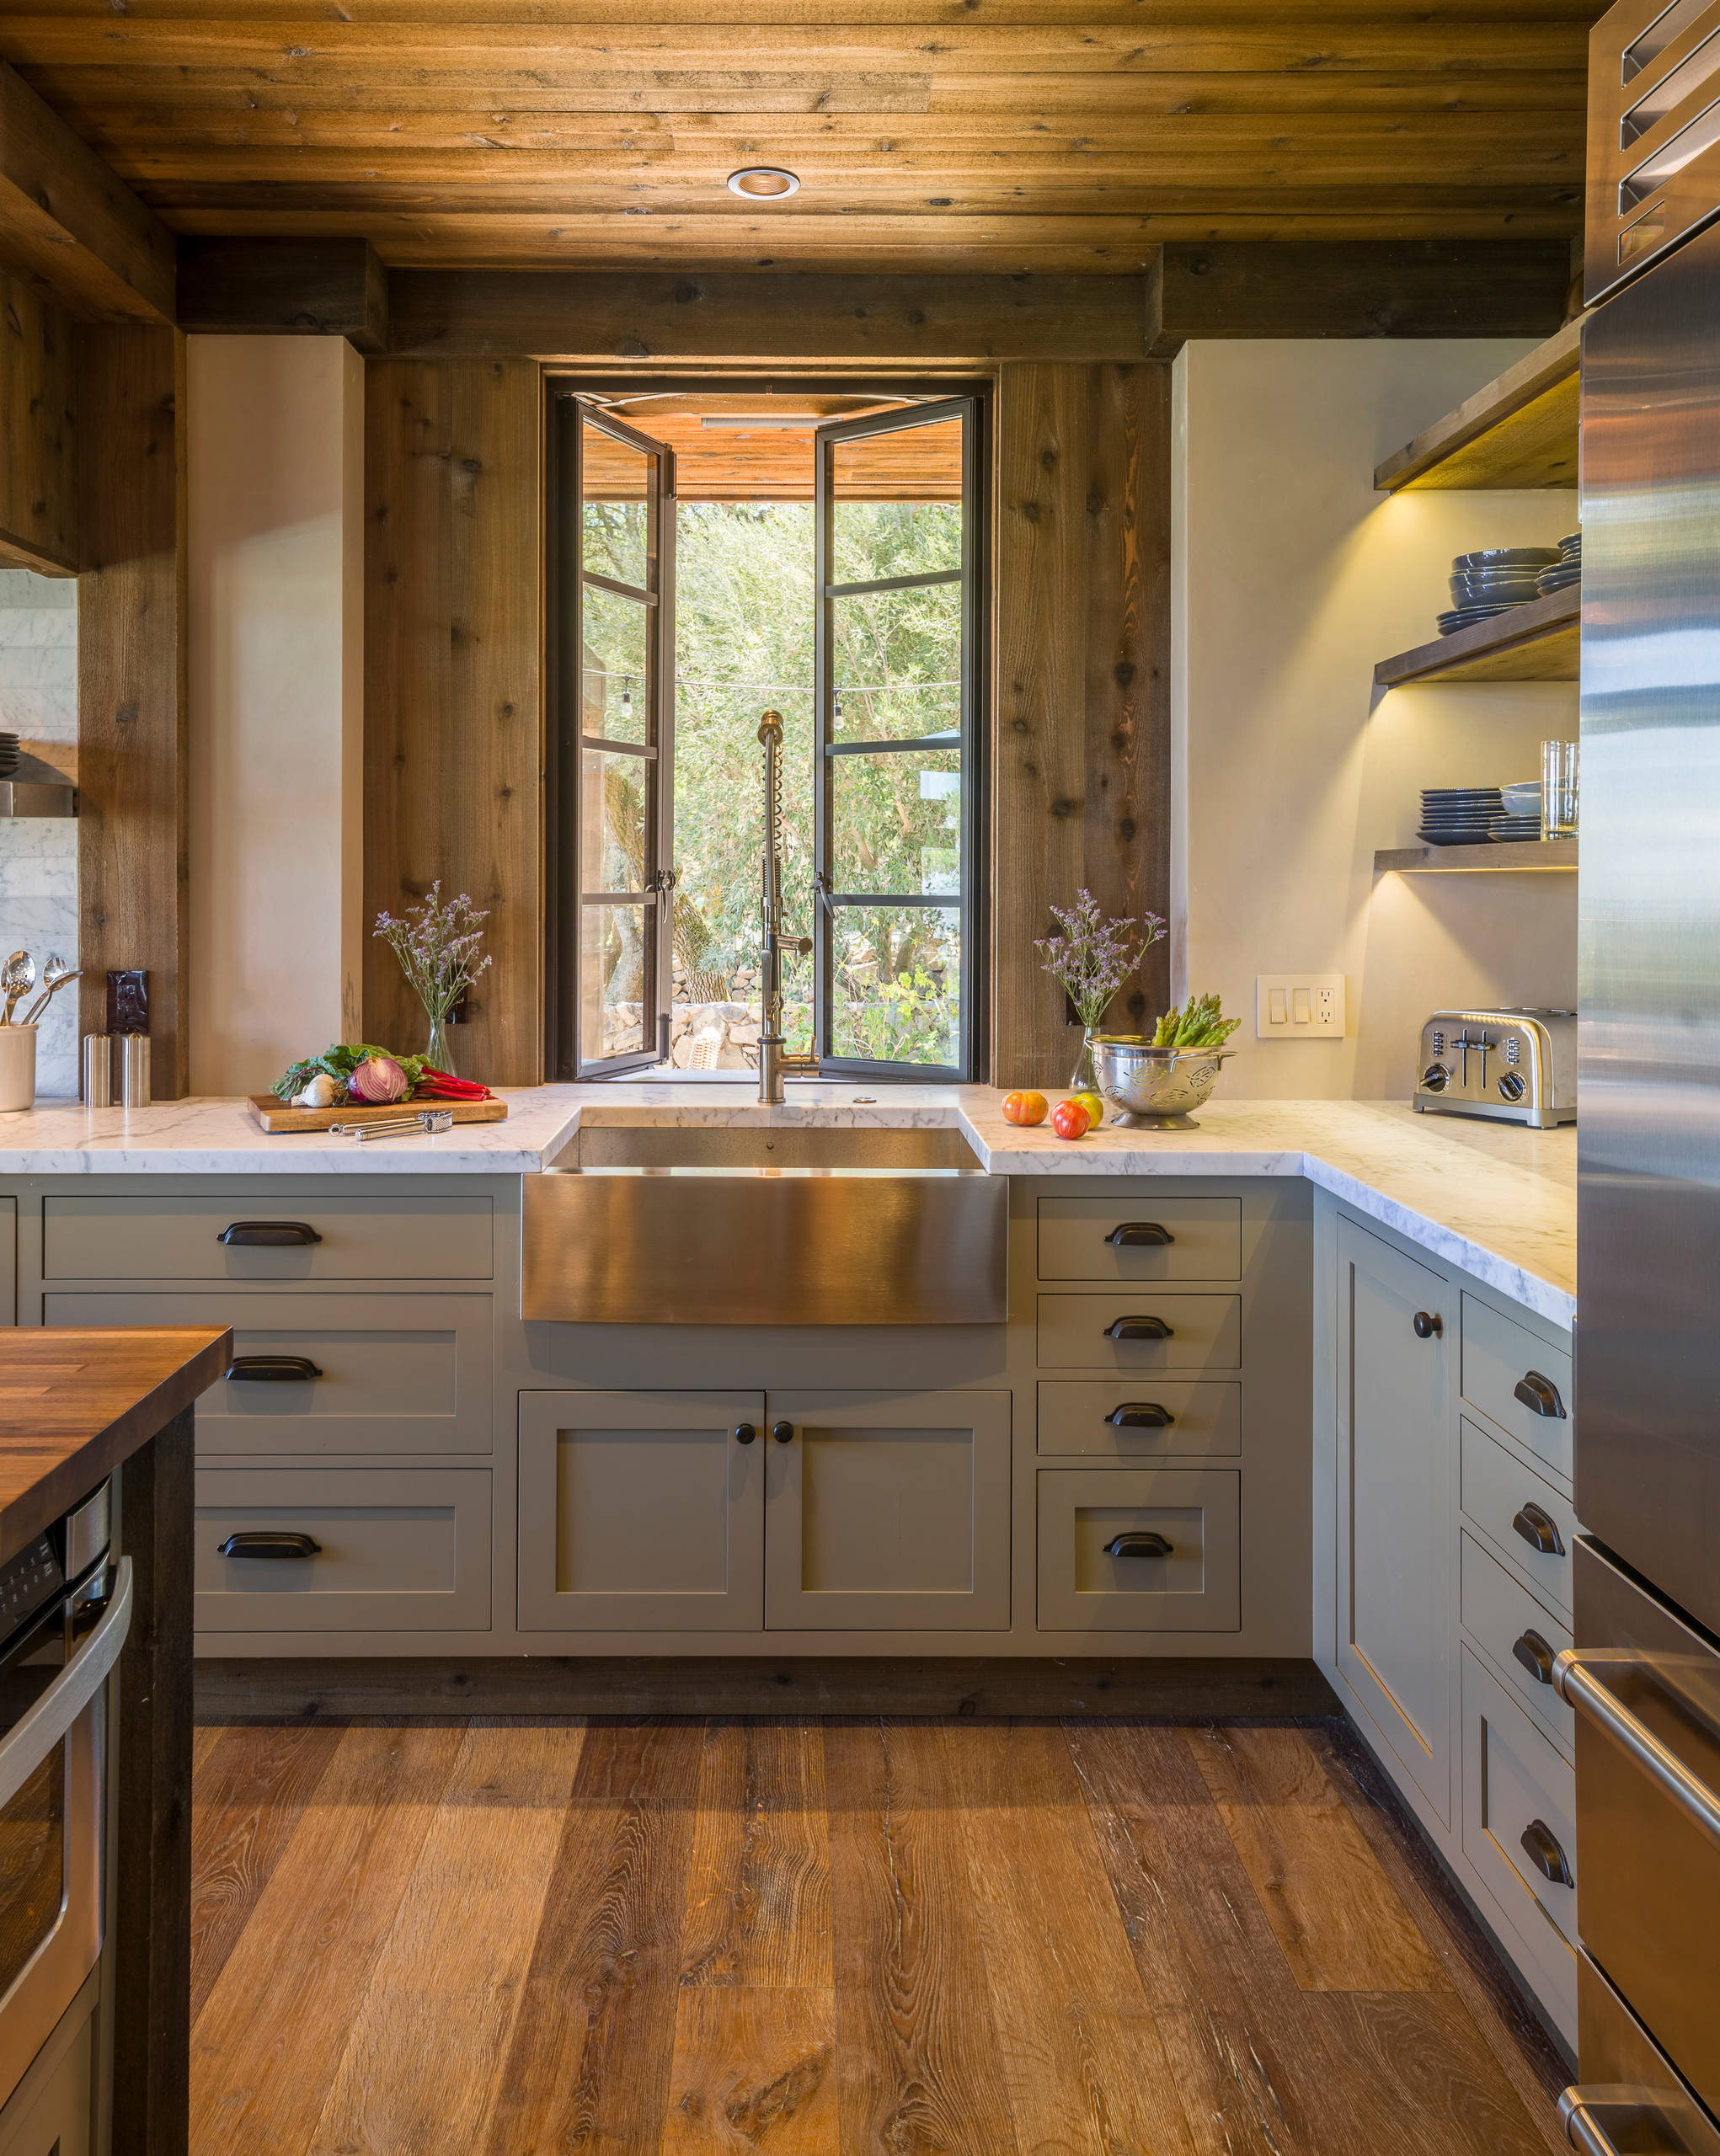 75 Beautiful Rustic Kitchen With Gray Cabinets Pictures Ideas March 2021 Houzz